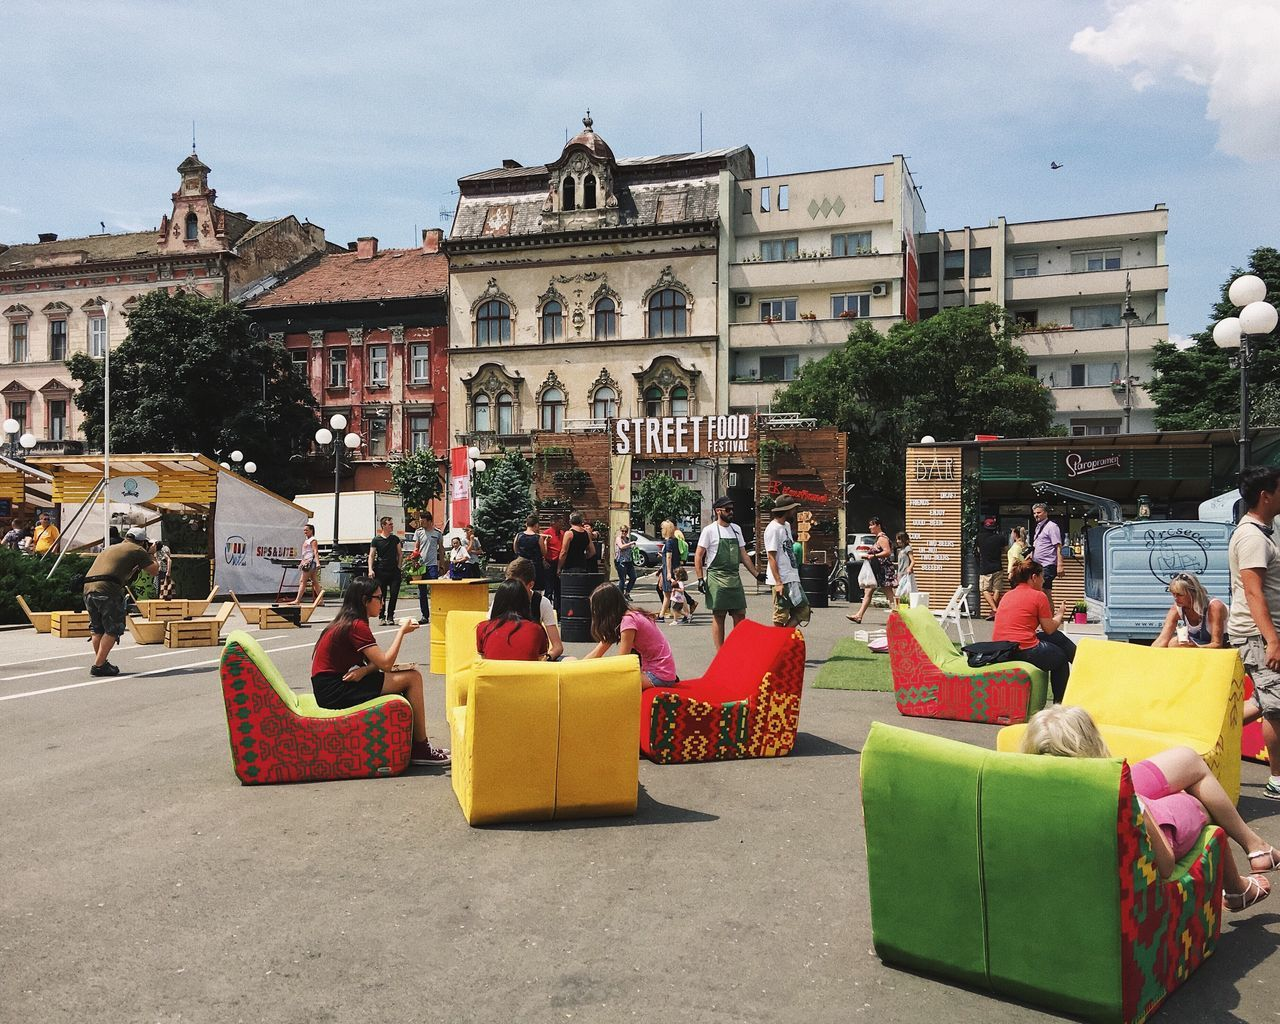 Urban relaxation... Architecture Real People Lifestyles Travel Destinations Sitting City People Outdoors Summer City Life Details Of My Life VSCO Leisure Activity Cityscape Street Made In Romania Enjoying Life Festival Street Fashion European Union Europe Socializing Relaxing Urban Street Life